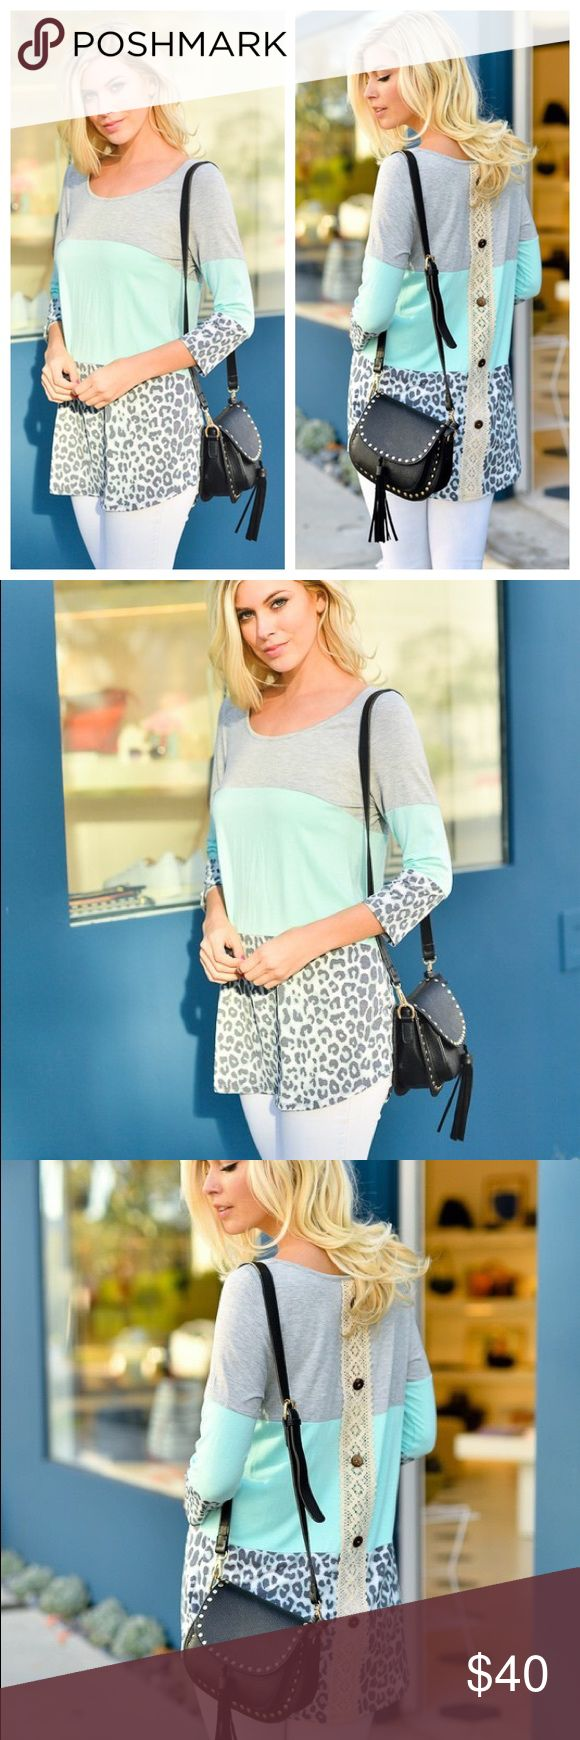 Mint leotard gray tunic top long sleeve lace shirt JUST IN!!! Beautiful mint green, gray, leopard, cheetah, lace back detail boutique tunic. Perfect top to pair with leggings or jeans. Dress up or down either you will look beautiful! Fall long sleeve shirt. Bundle and save. boho gypsy boutique Tops